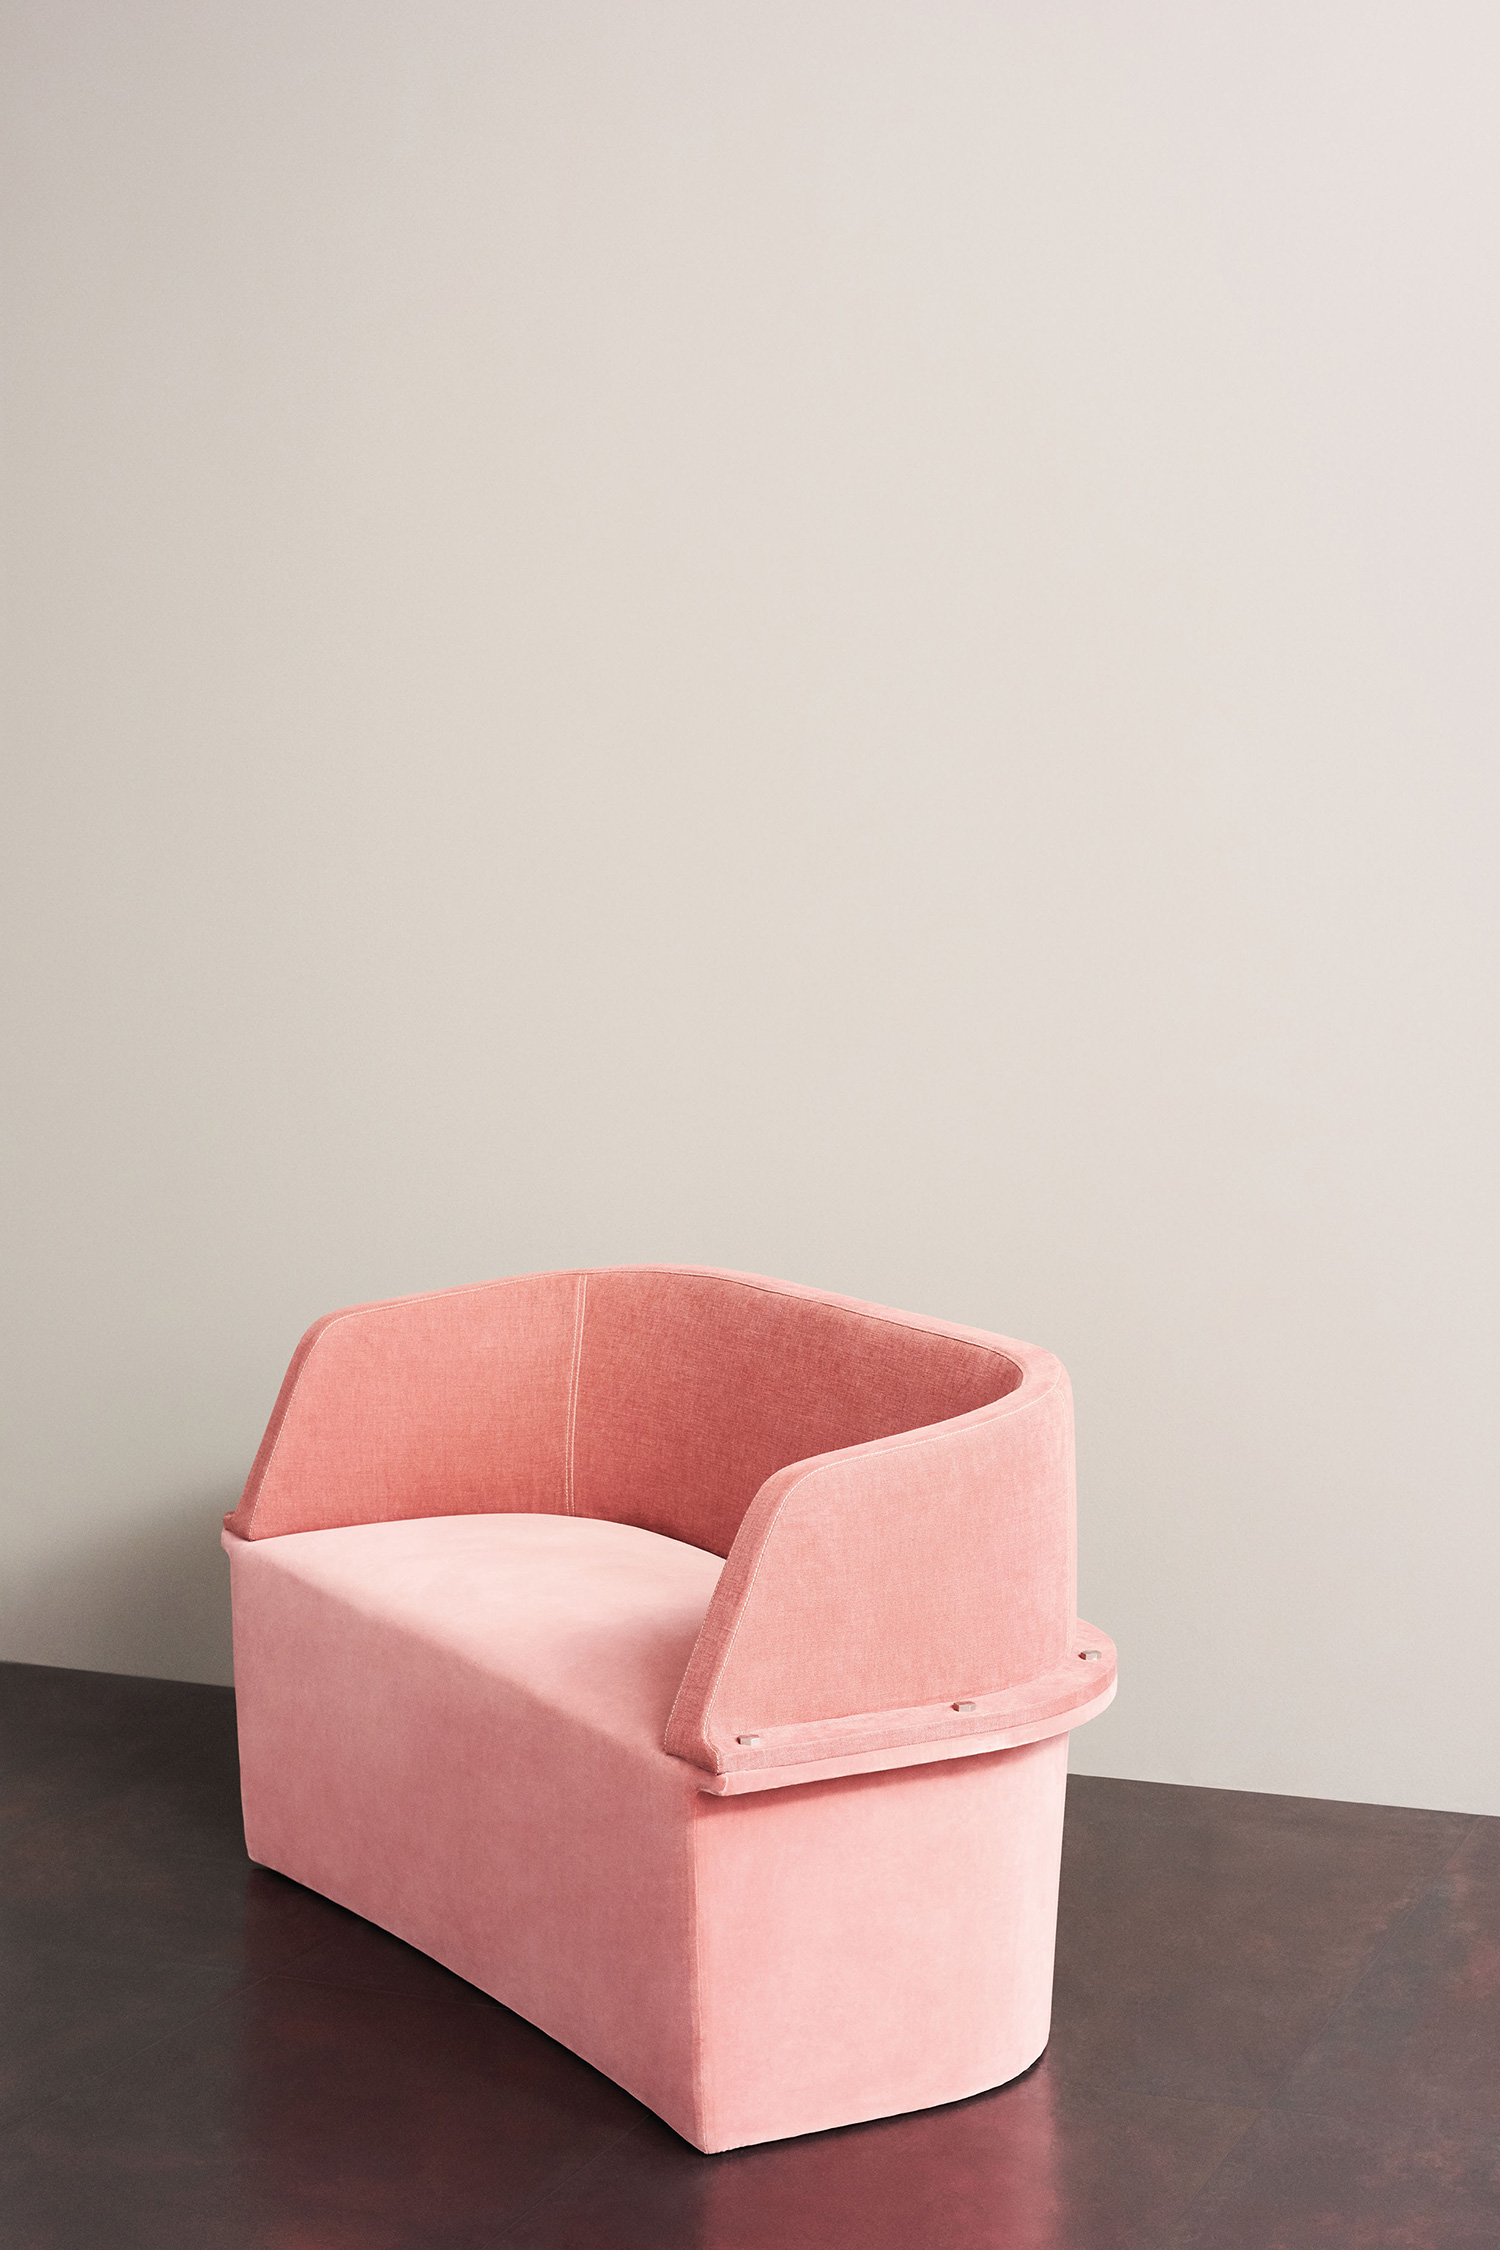 Diesel Living Assembly Sofa for Moroso at Salone del Mobile 2017 | Yellowtrace